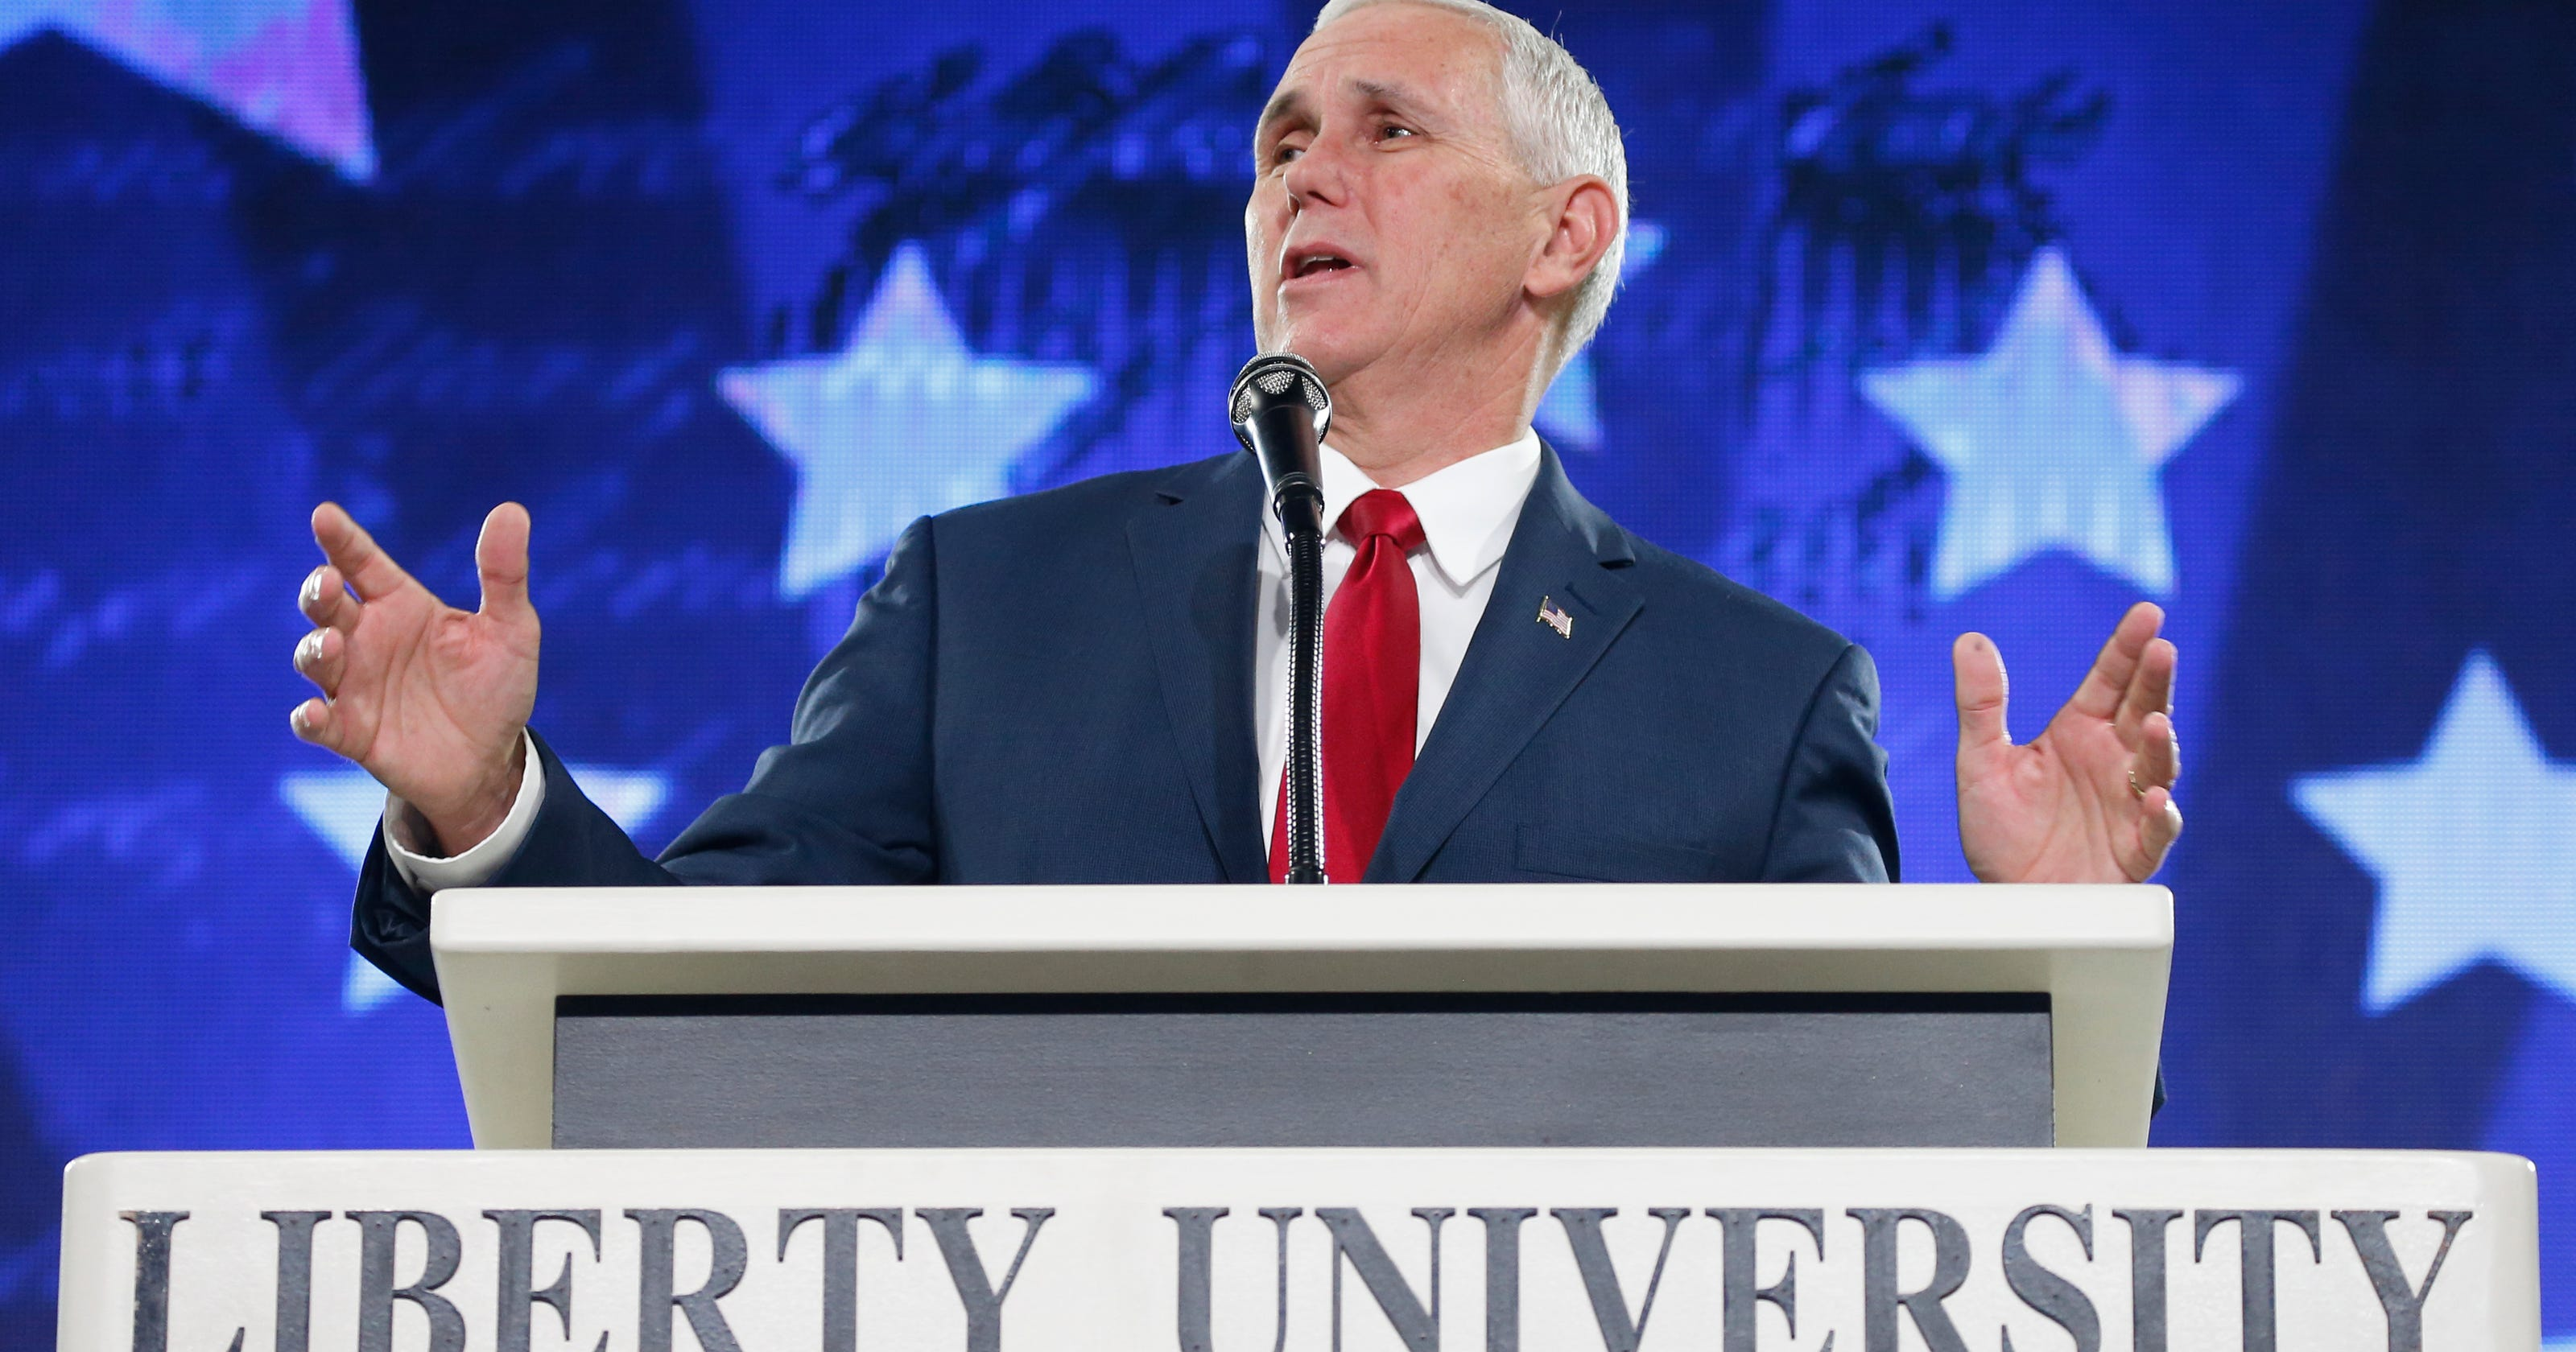 Mike Pence: Why his role as Trump's evangelical ambassador is facing new pushback - USA TODAY